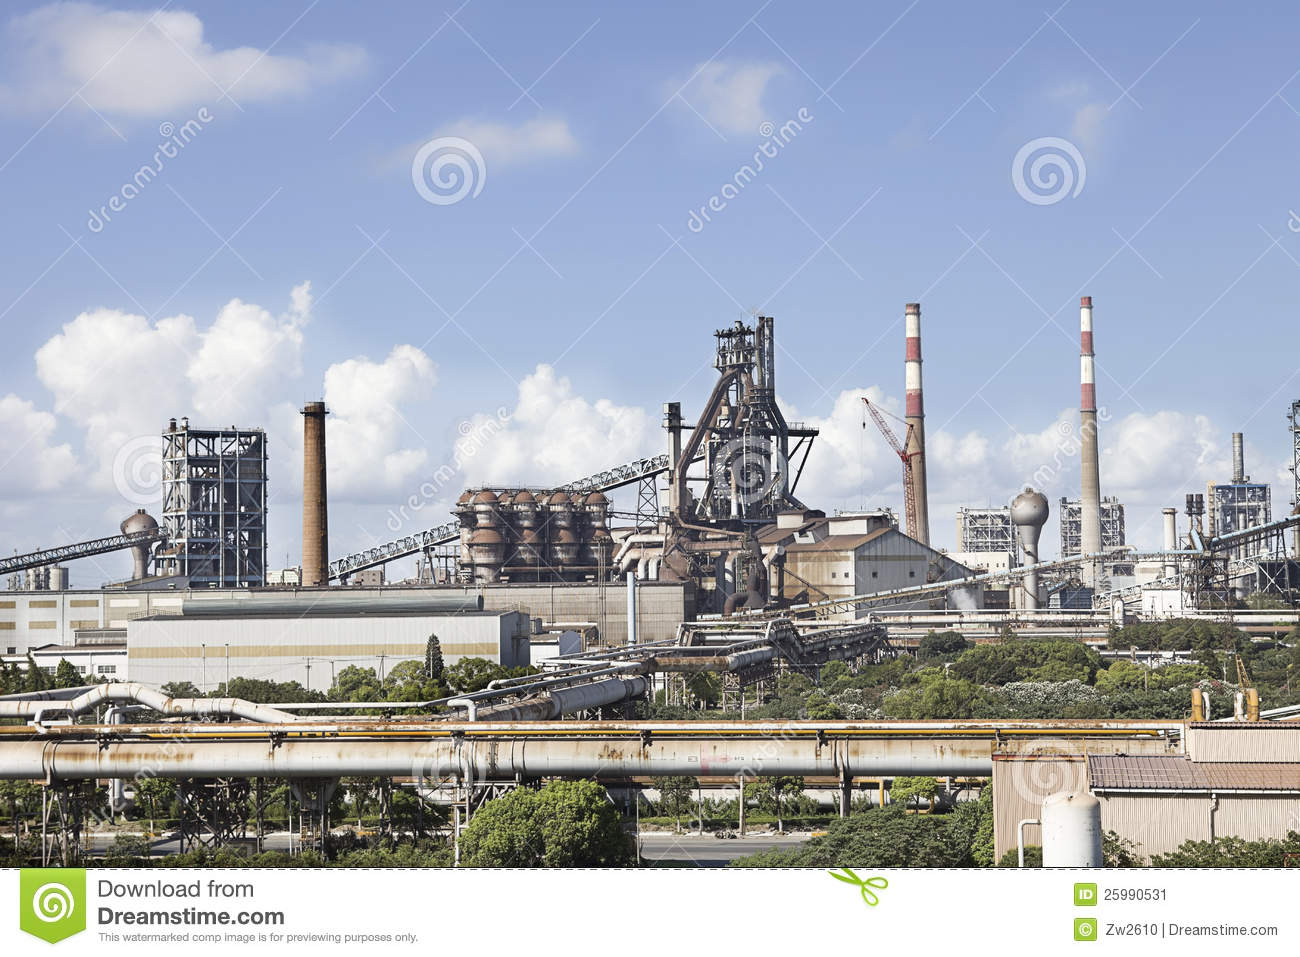 Outline of a steel works